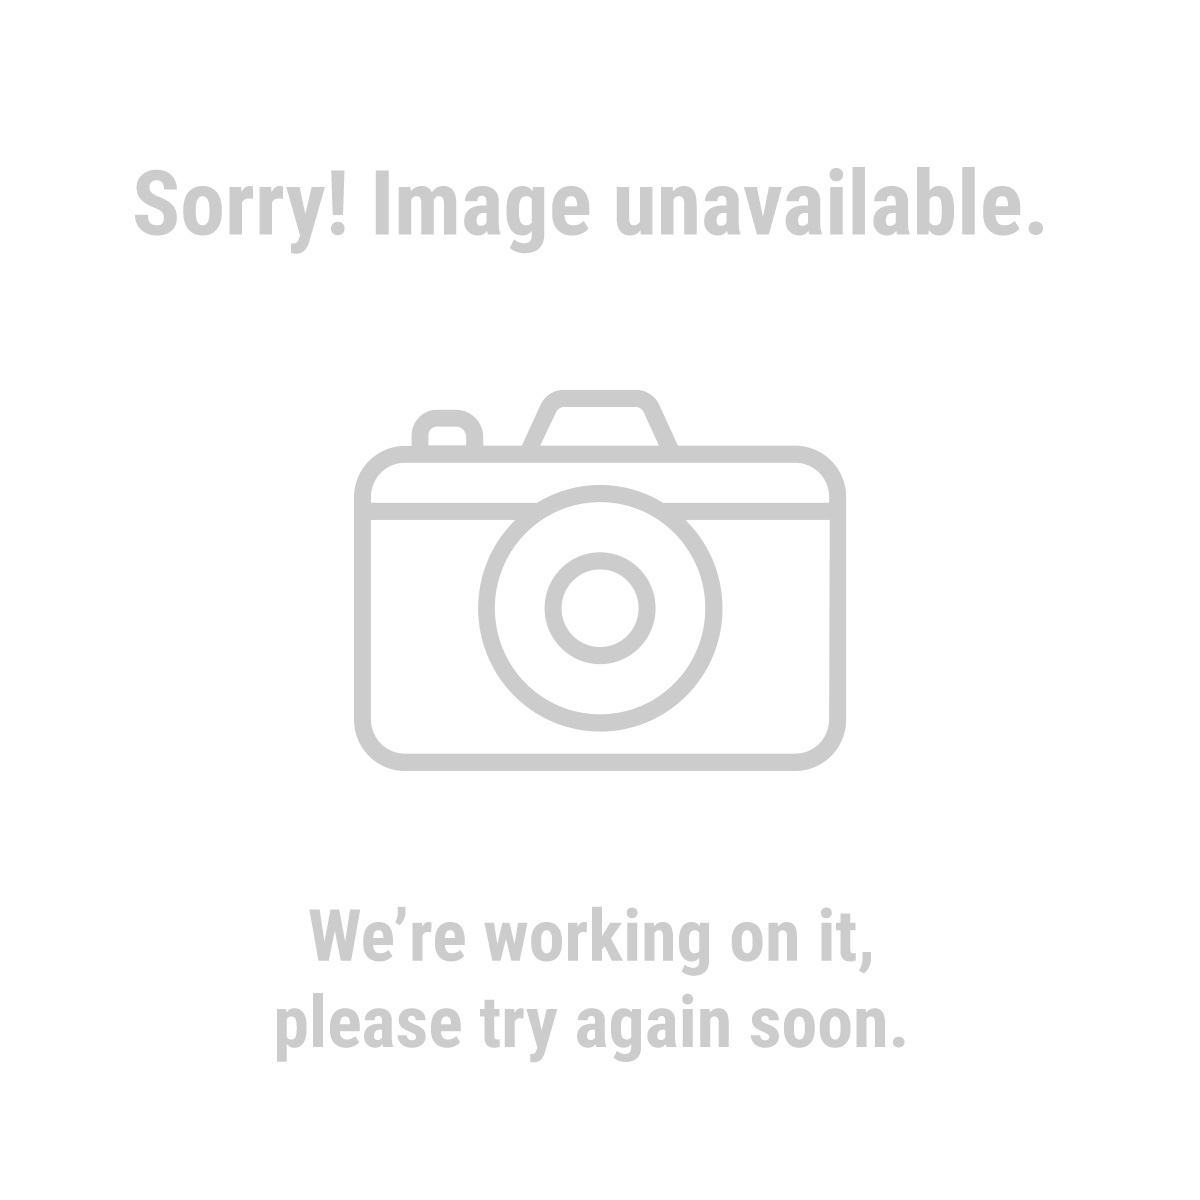 Pittsburgh® Automotive 40749 Pulley Remover and Installer Set